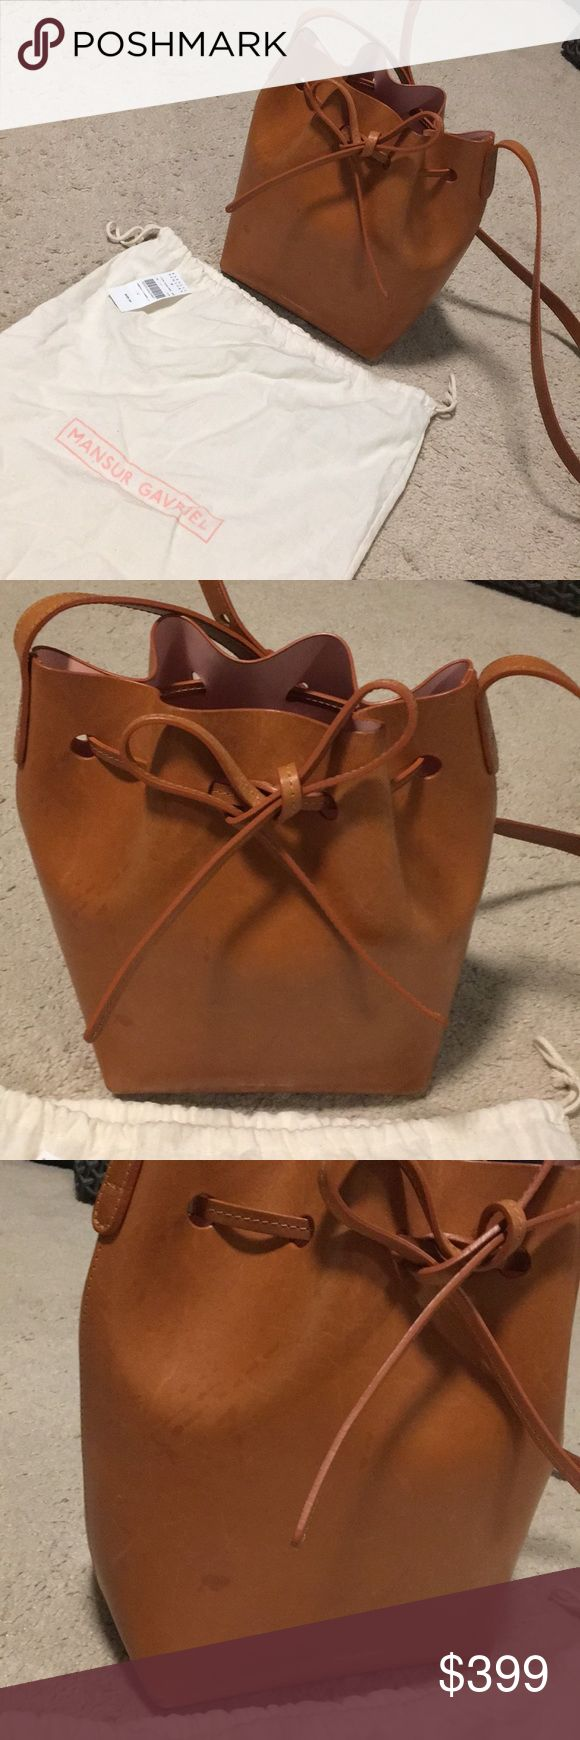 Mansur Gavriel Mini Tan Bucket Bag ✨ $325 on 🅿️ Worn a few times. Small scratches as pictures but it actually adds a bit of character to the bag, and Mansur Gavriel themselves say that each bag and the unique wear and tear it gets is meant to 'tell a story'.  The cammellotan colour really compliments the nude-pinkrosa of the lining. Comes with dust bag and tags. The mini is the medium sized bag! 💗 325 over ♈️enmo or 🅿️🅿️ Mansur Gavriel Bags Crossbody Bags